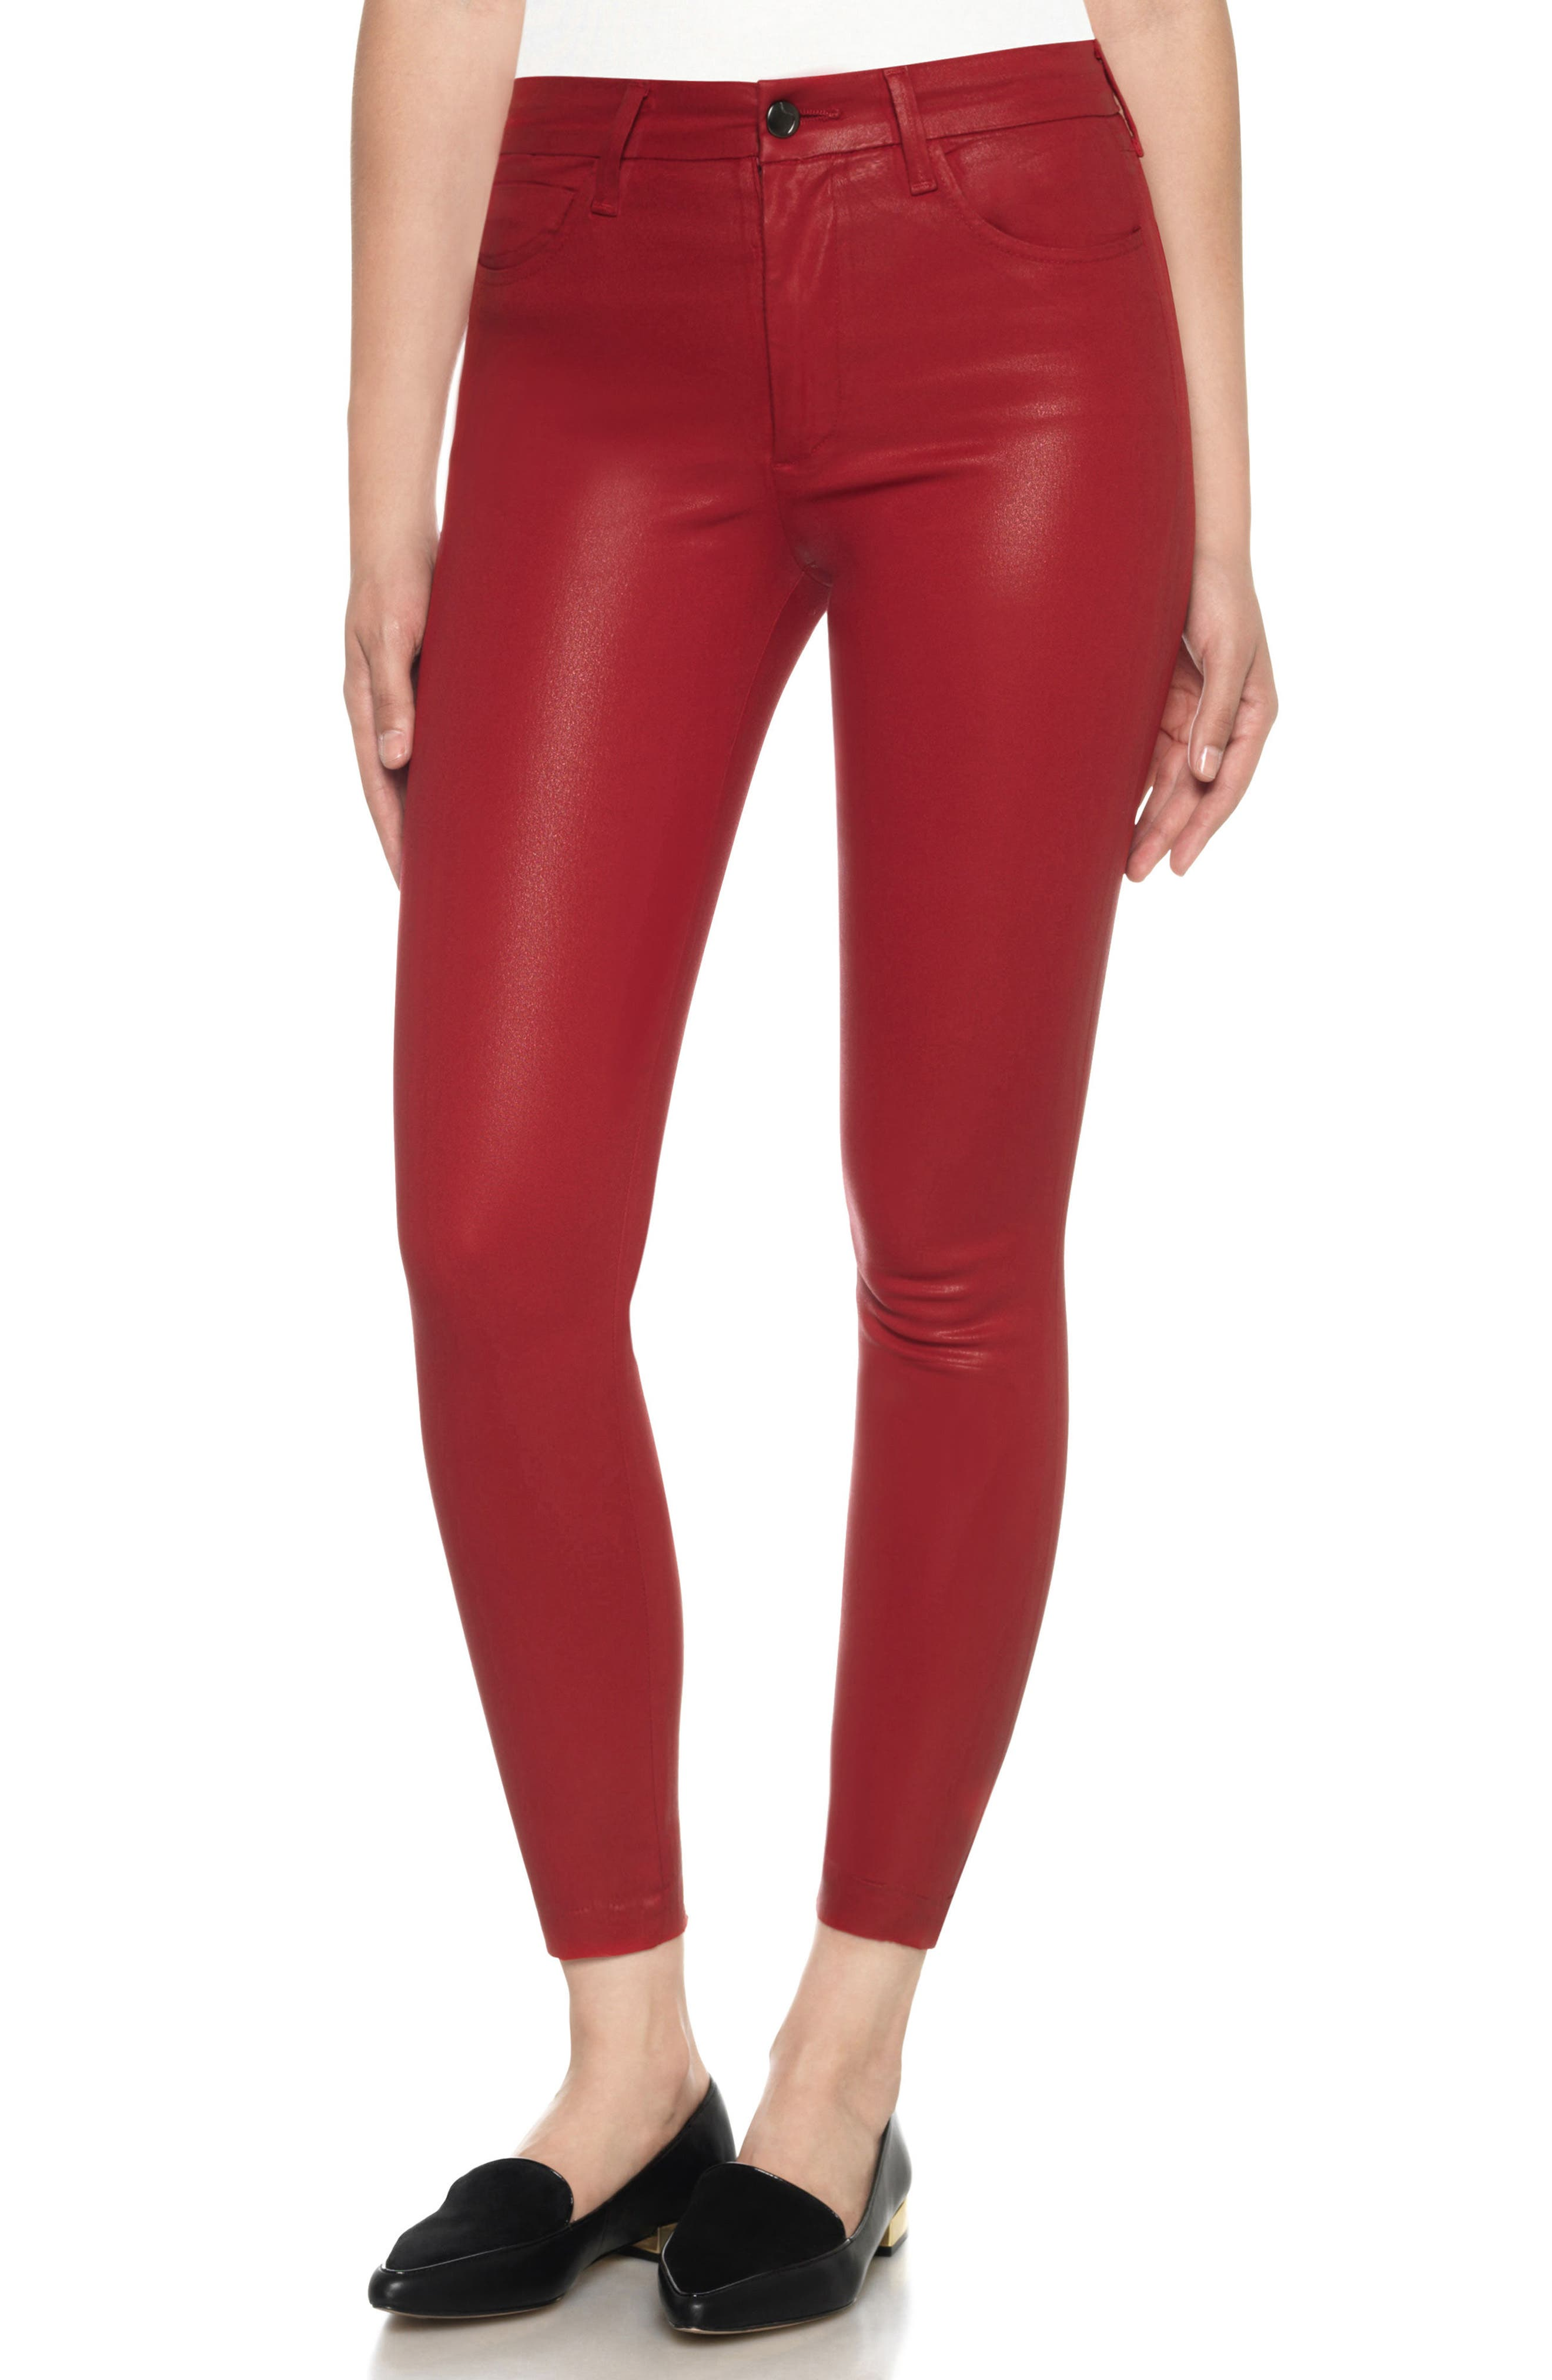 Alternate Image 1 Selected - Joe's Charlie Coated High Waist Ankle Skinny Jeans